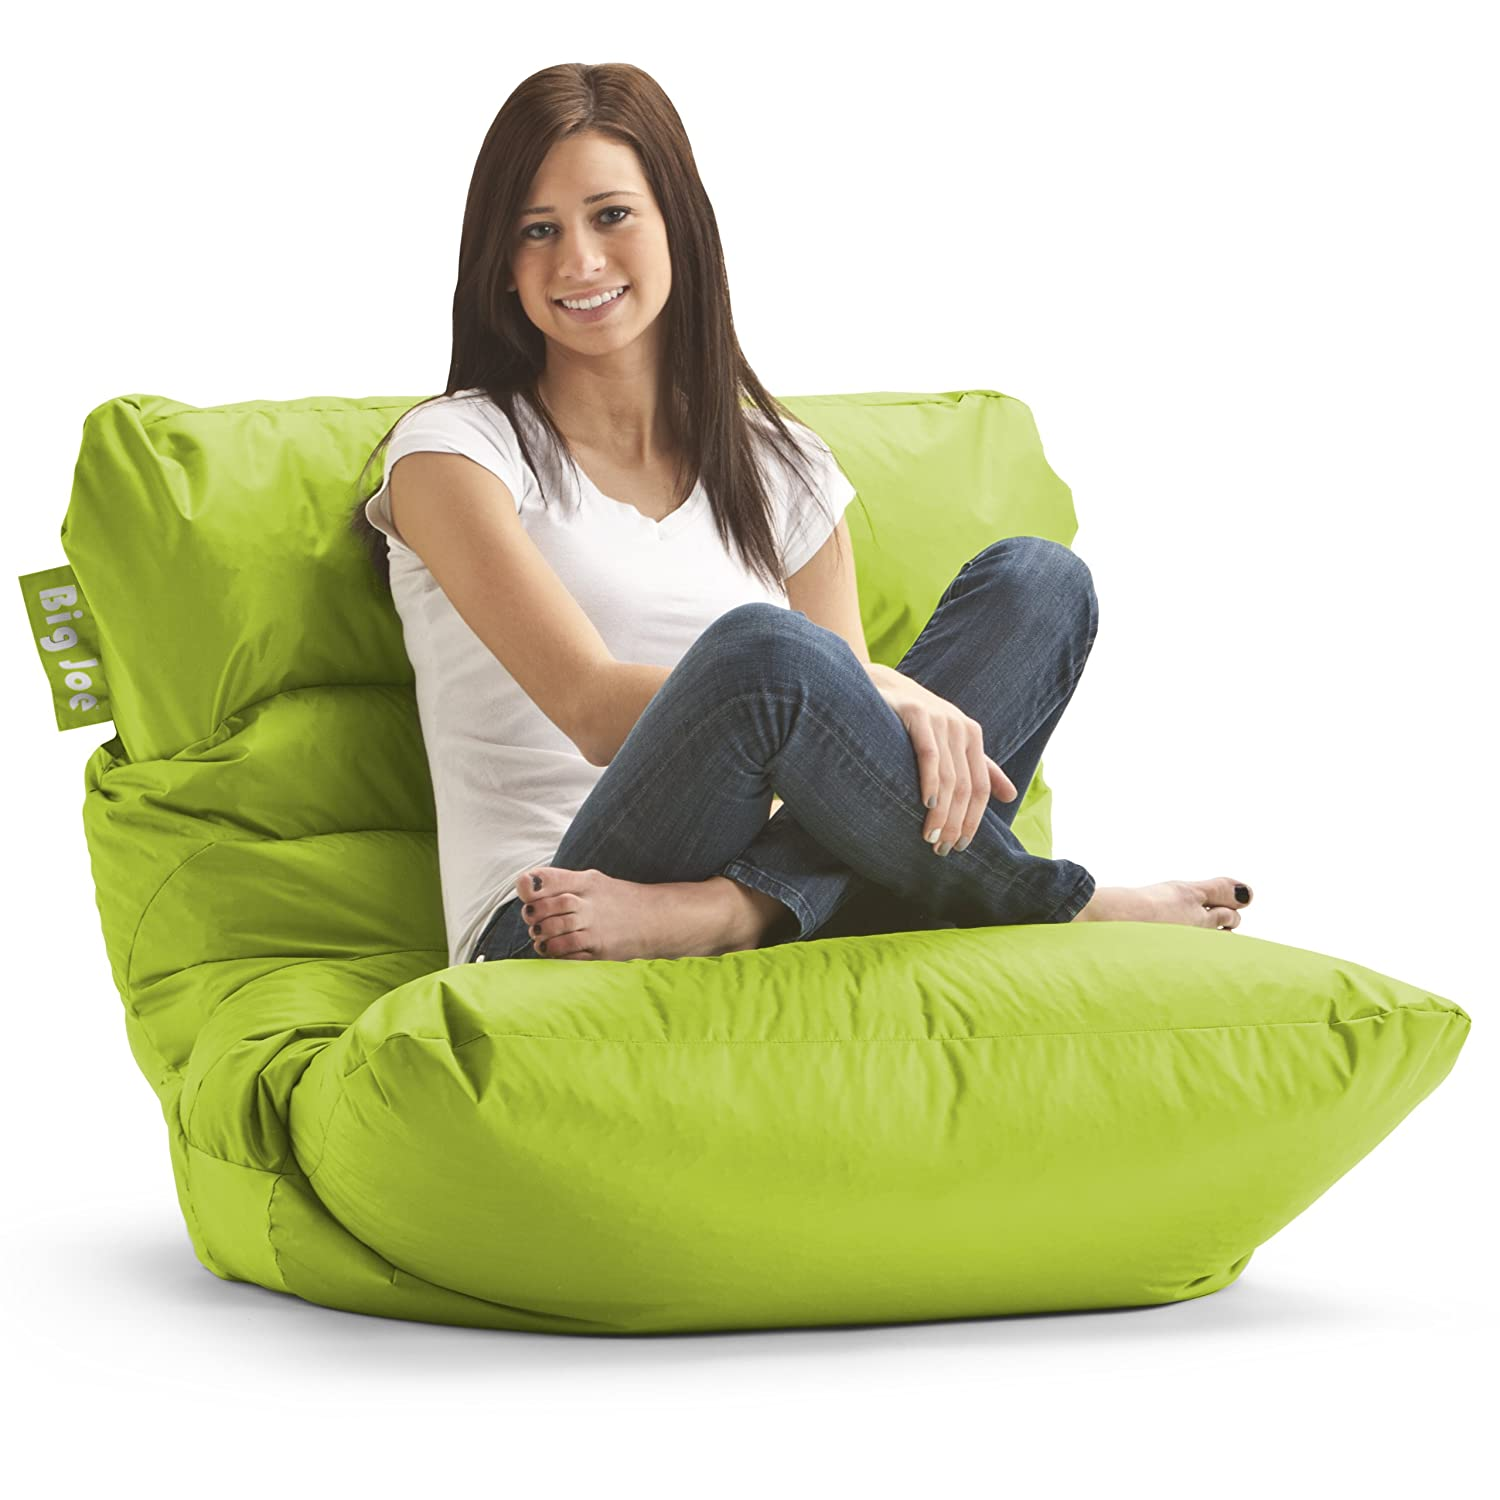 Bean bag chairs price - Bean Bag Chairs Price 7